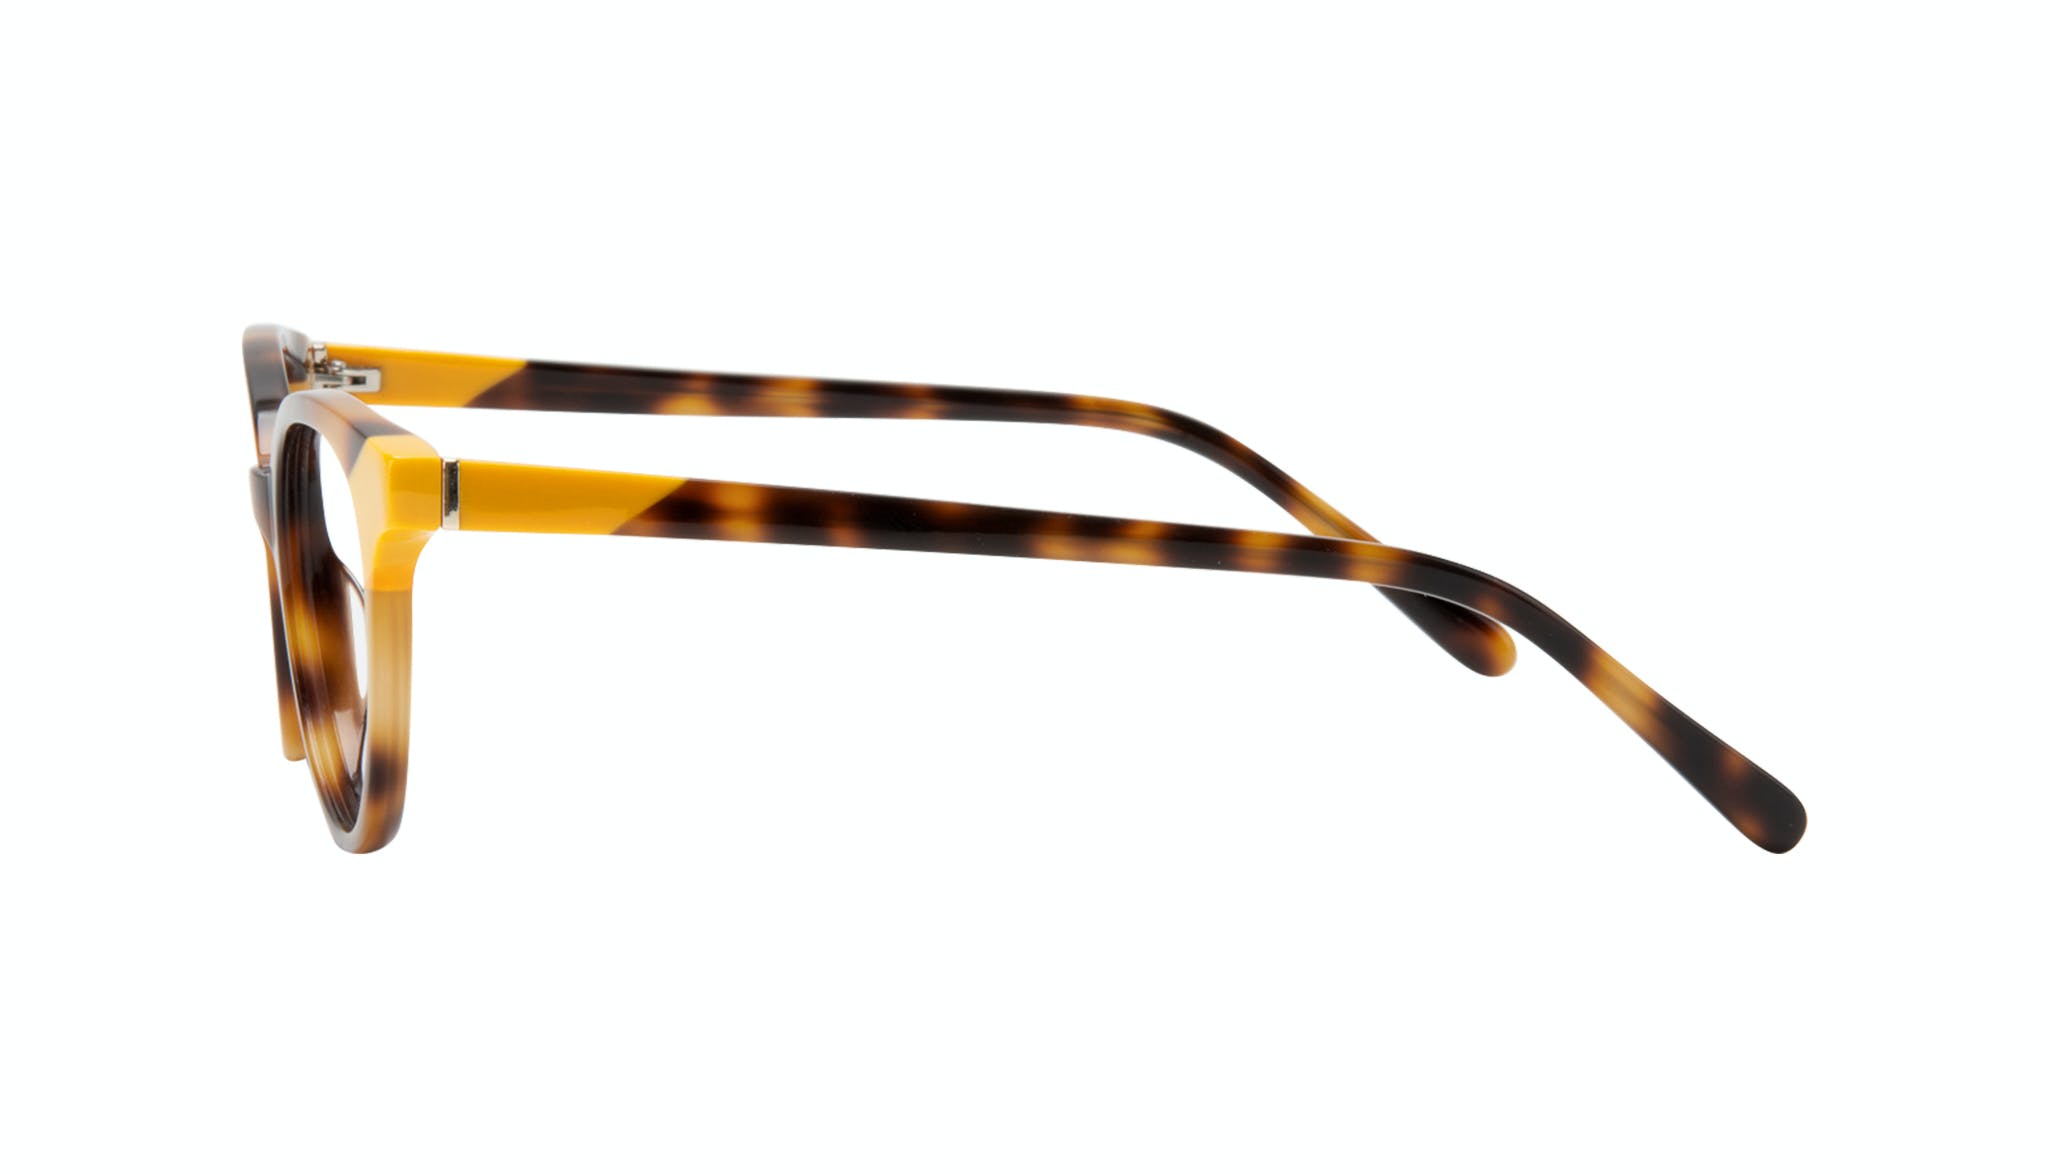 Affordable Fashion Glasses Round Eyeglasses Women Bright Yellow Pop Side